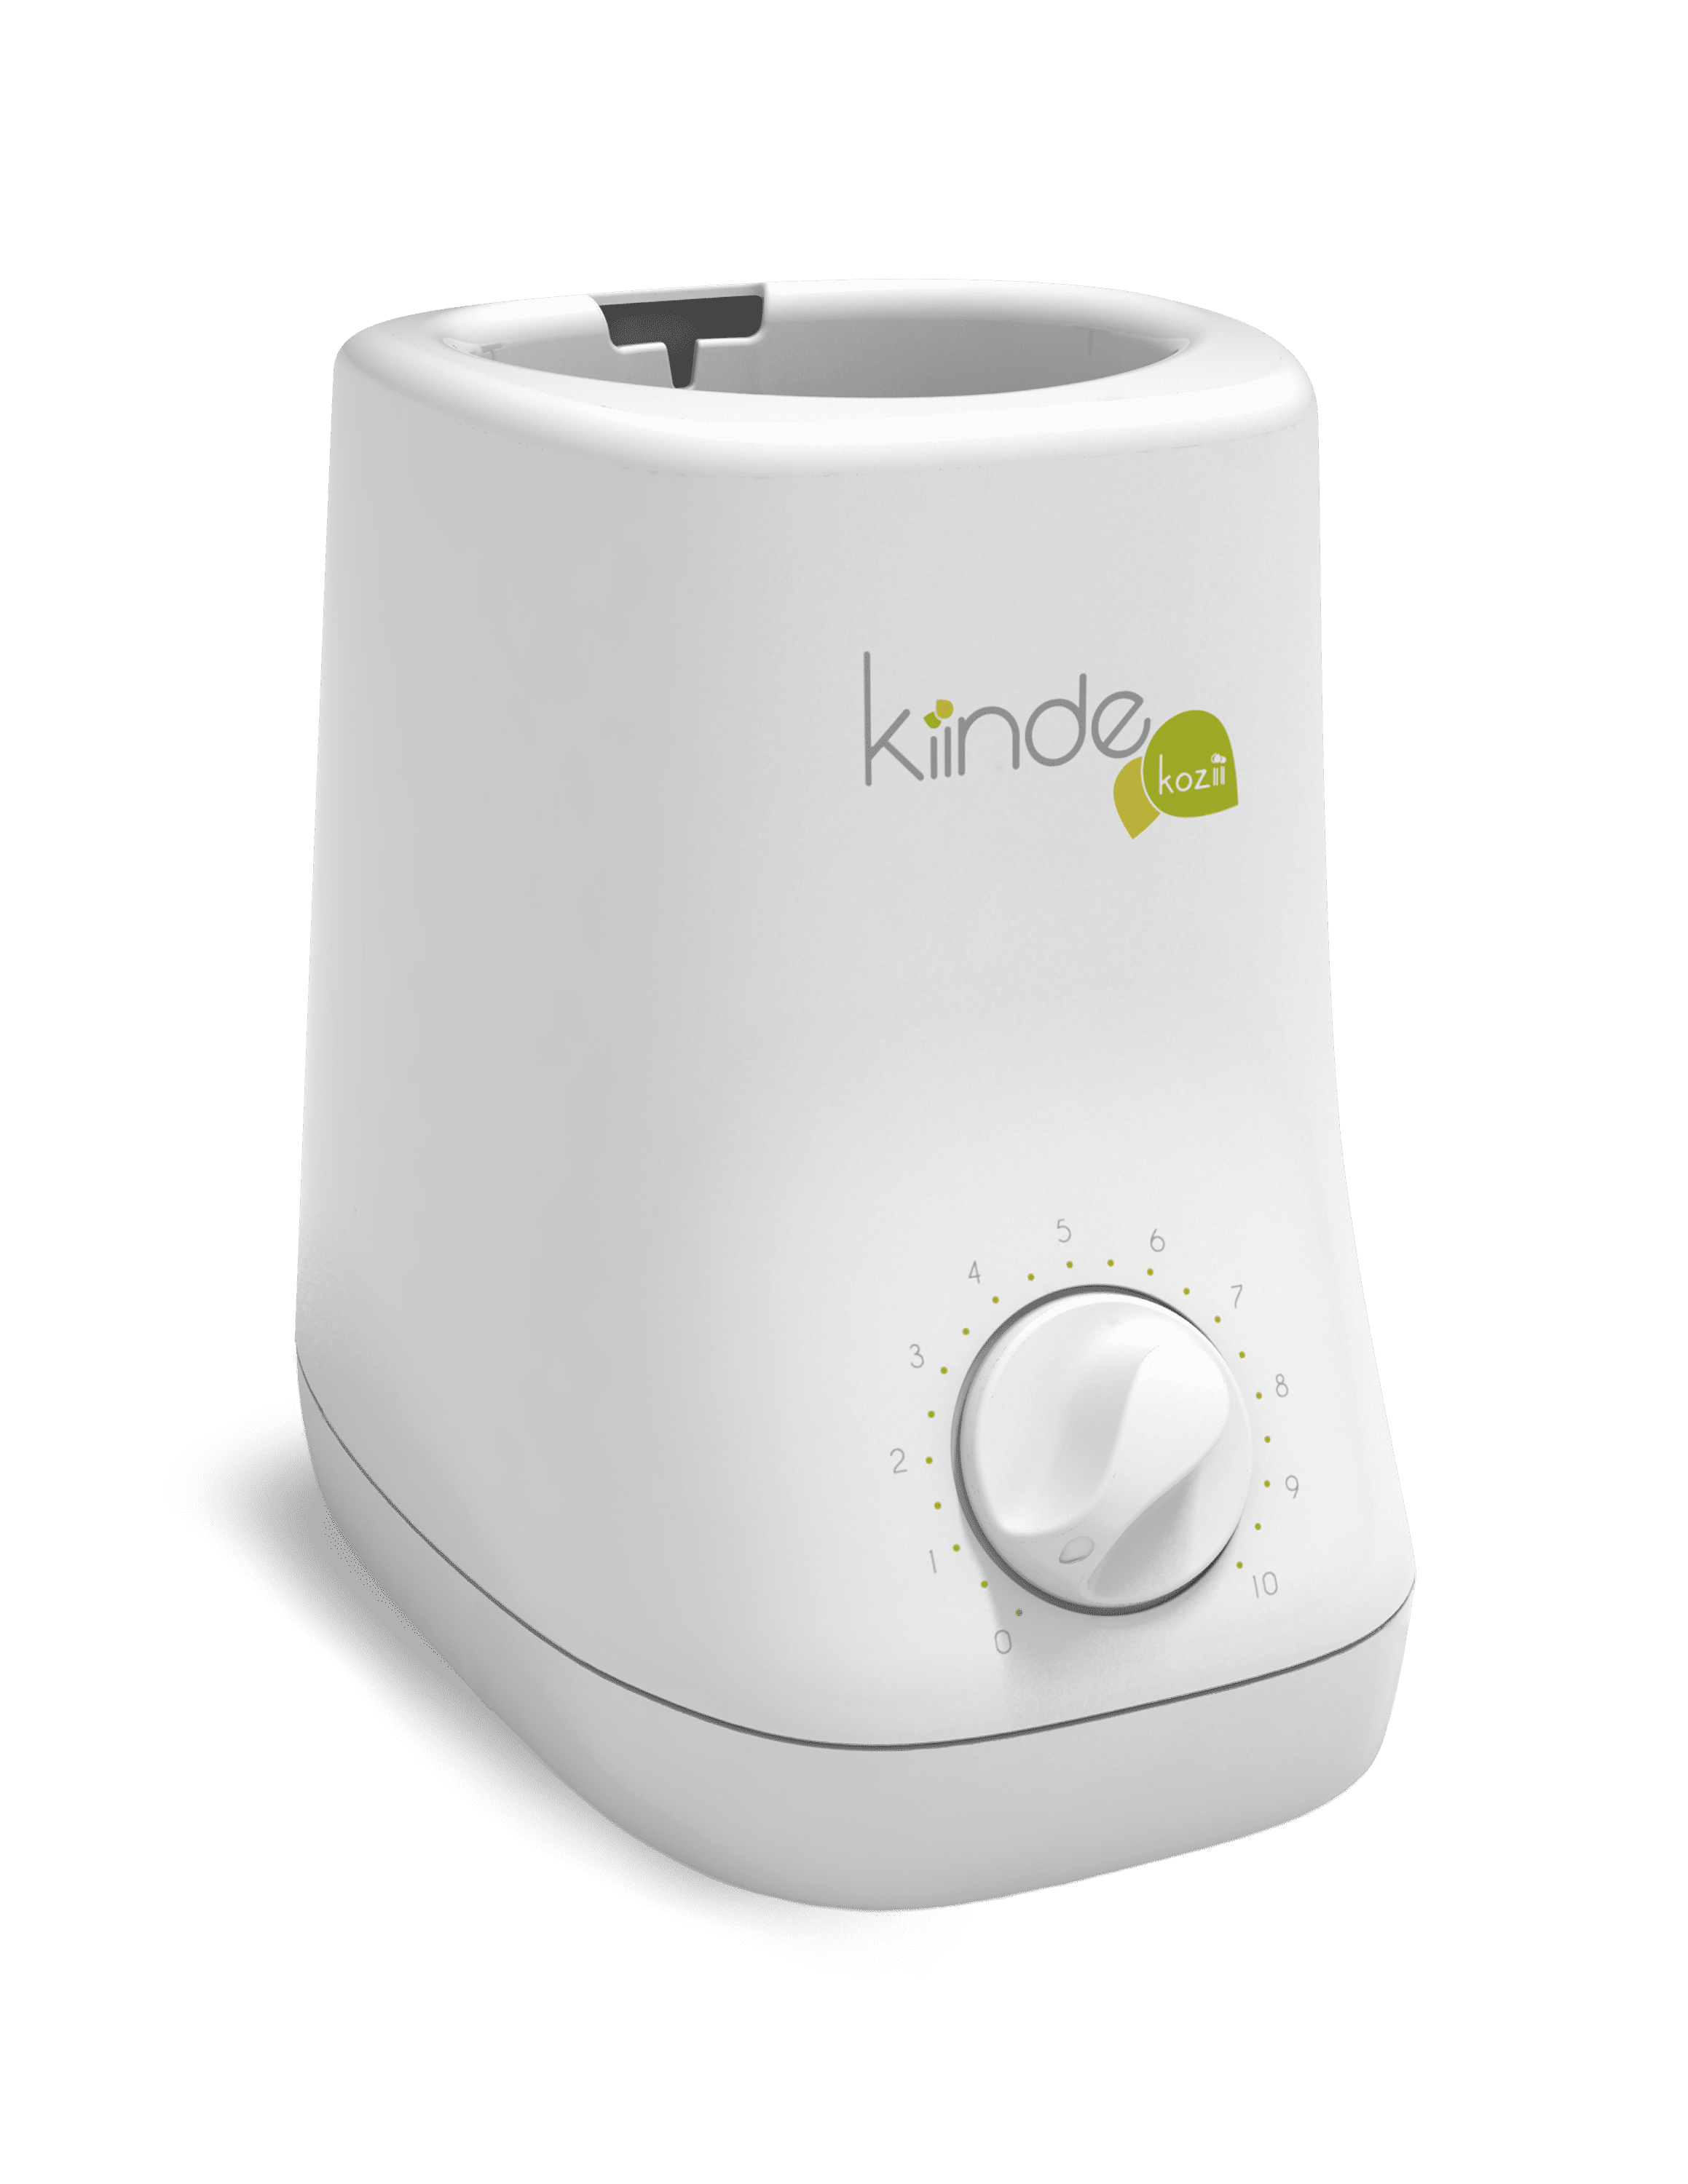 Kiinde Kozii Breast Milk and Bottle Warmer by Kiinde